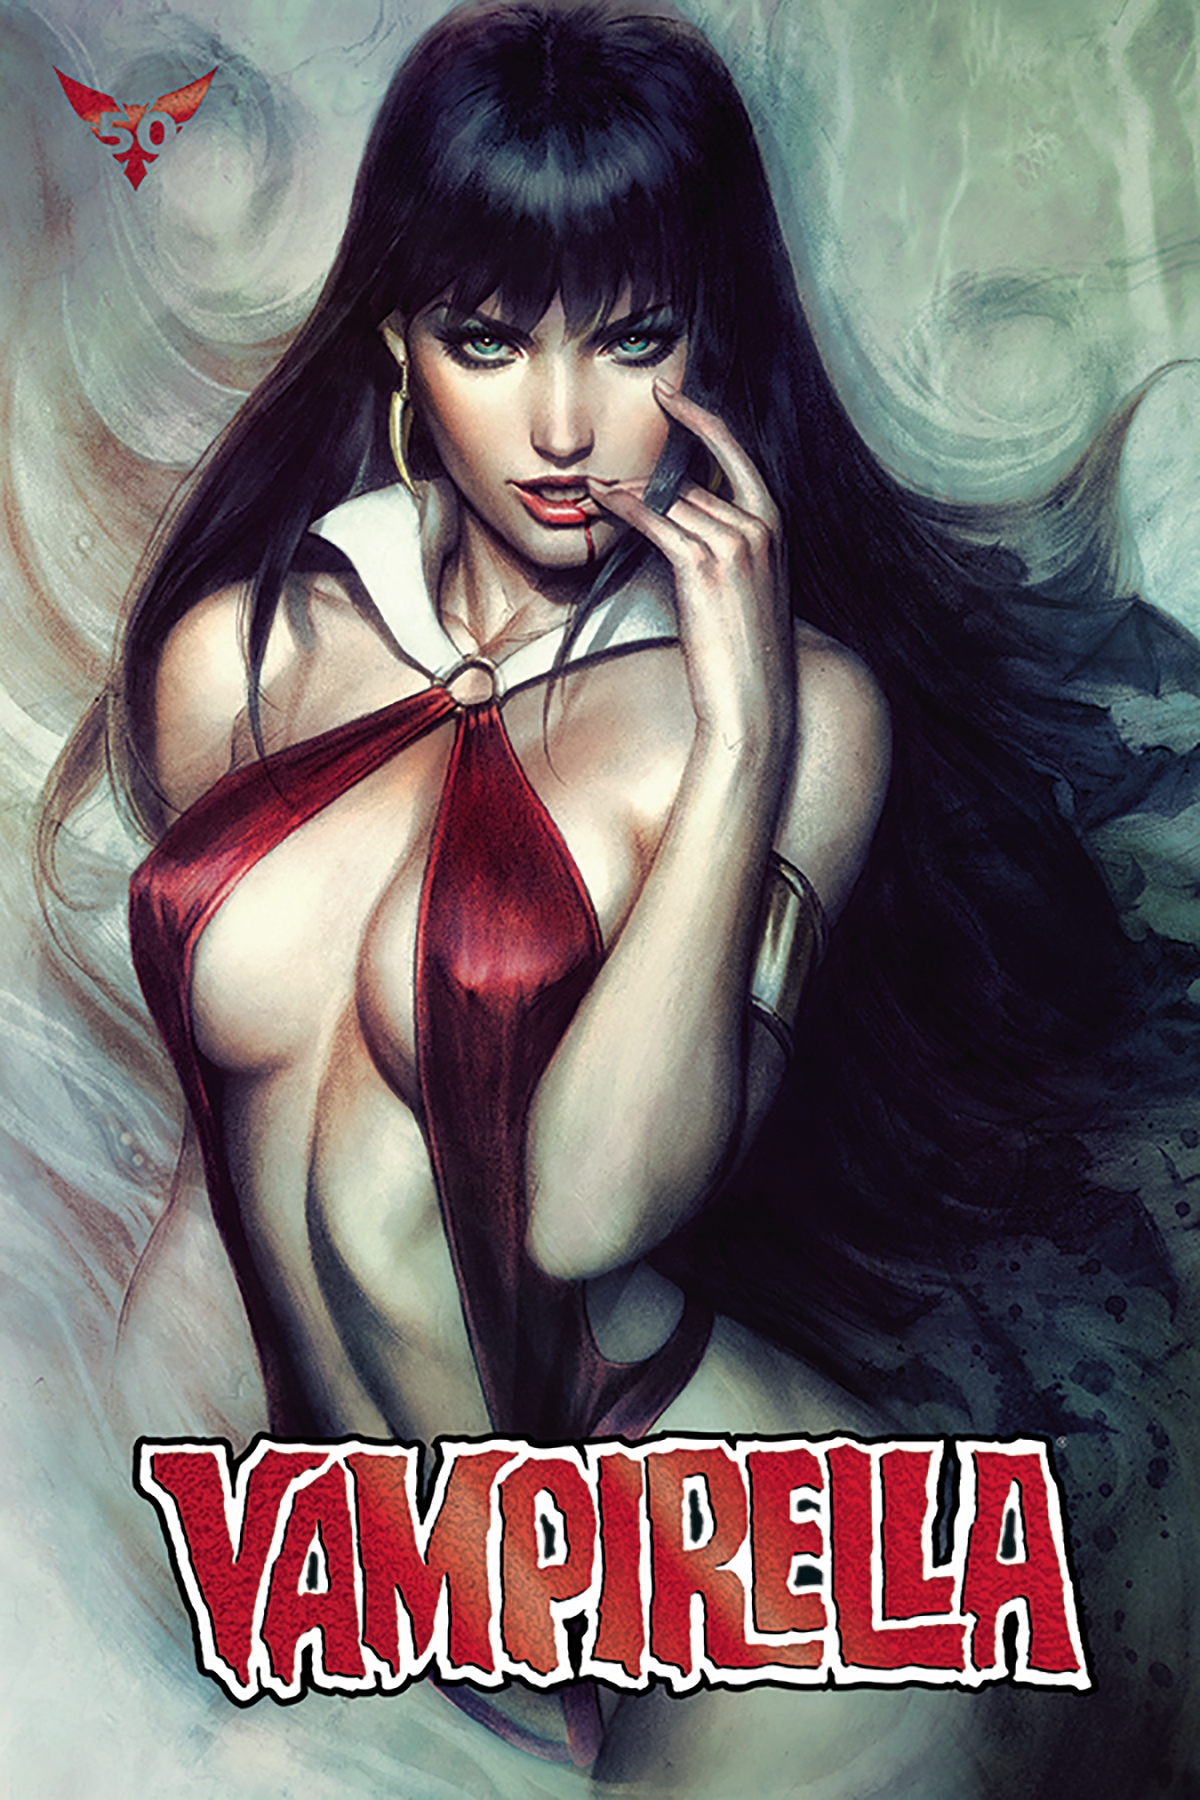 VAMPIRELLA #6 ARTGERM ULTRA LTD RED FOIL VAR